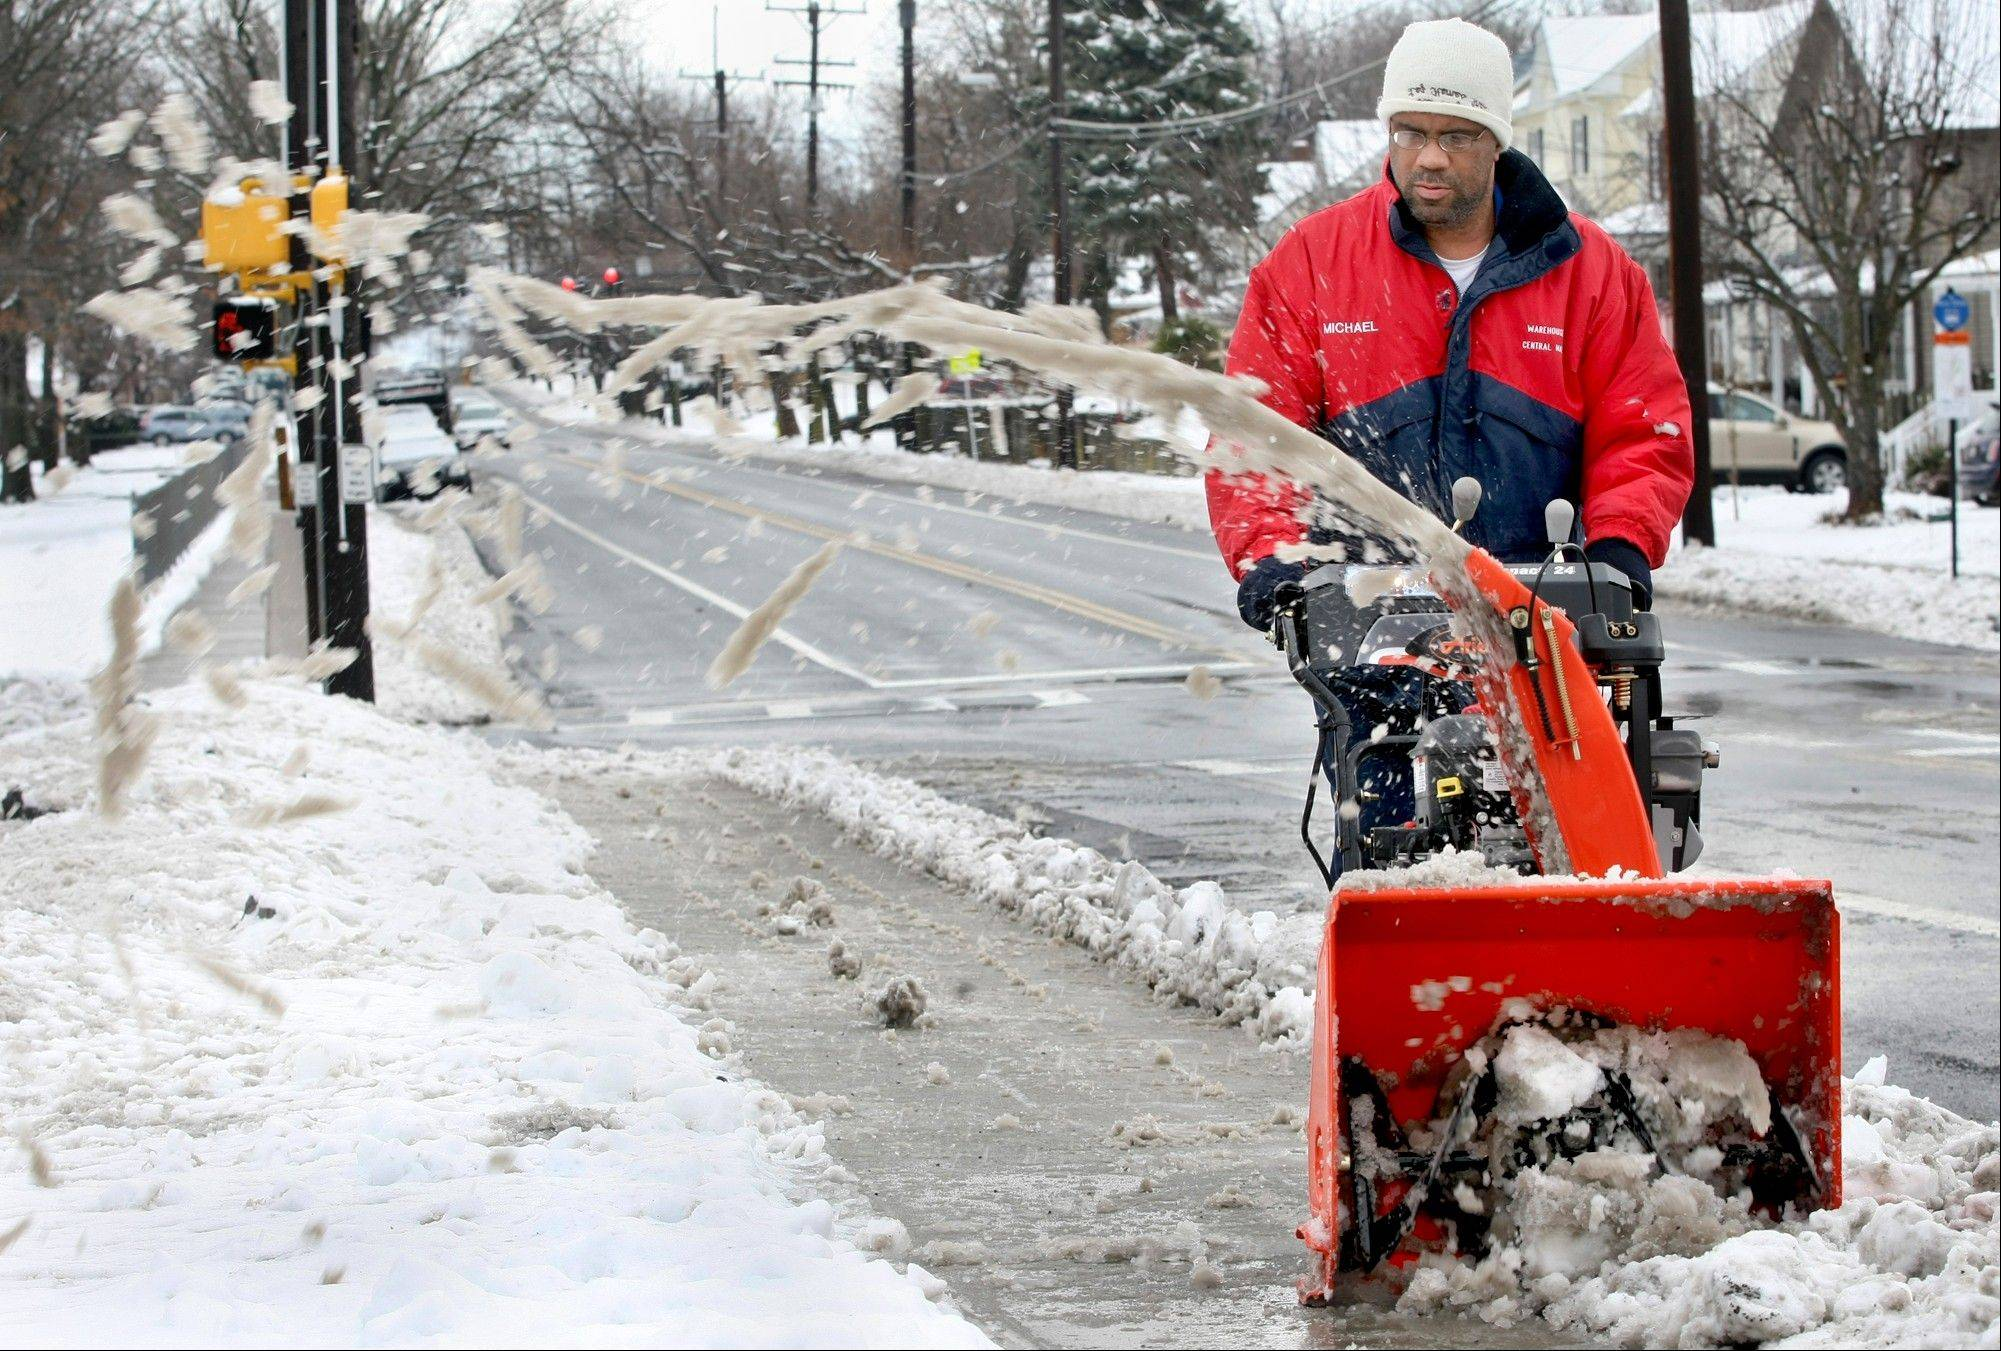 Michael Page uses a snowblower to remove several inches of heavy, wet snow from the sidewalk in front of his Winchester, Va., home on Monday, Feb. 3, 2013. Winter storm Maximus swept through the area dumping snow in the area closing schools and government offices.